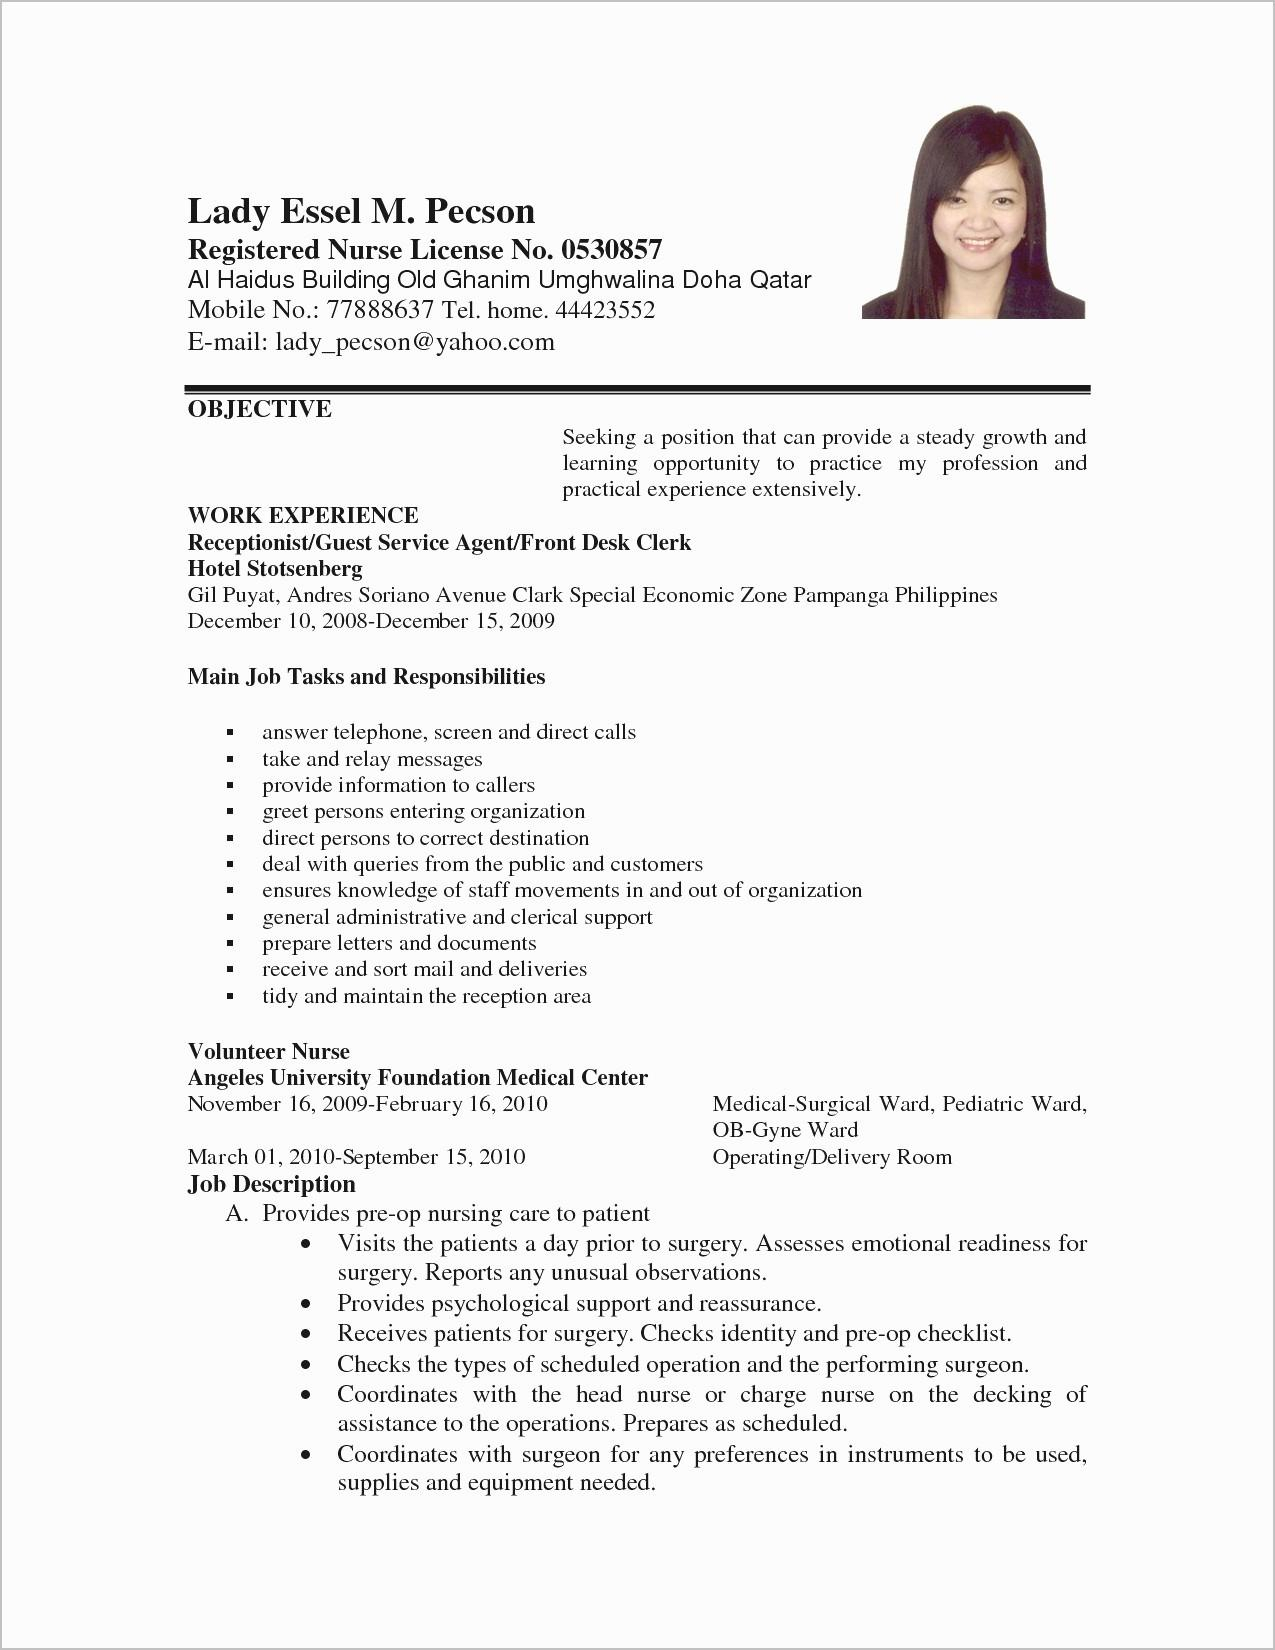 Resume Best Practices - Disney Cover Letter Awesome Lovely Resume Pdf Beautiful Resume